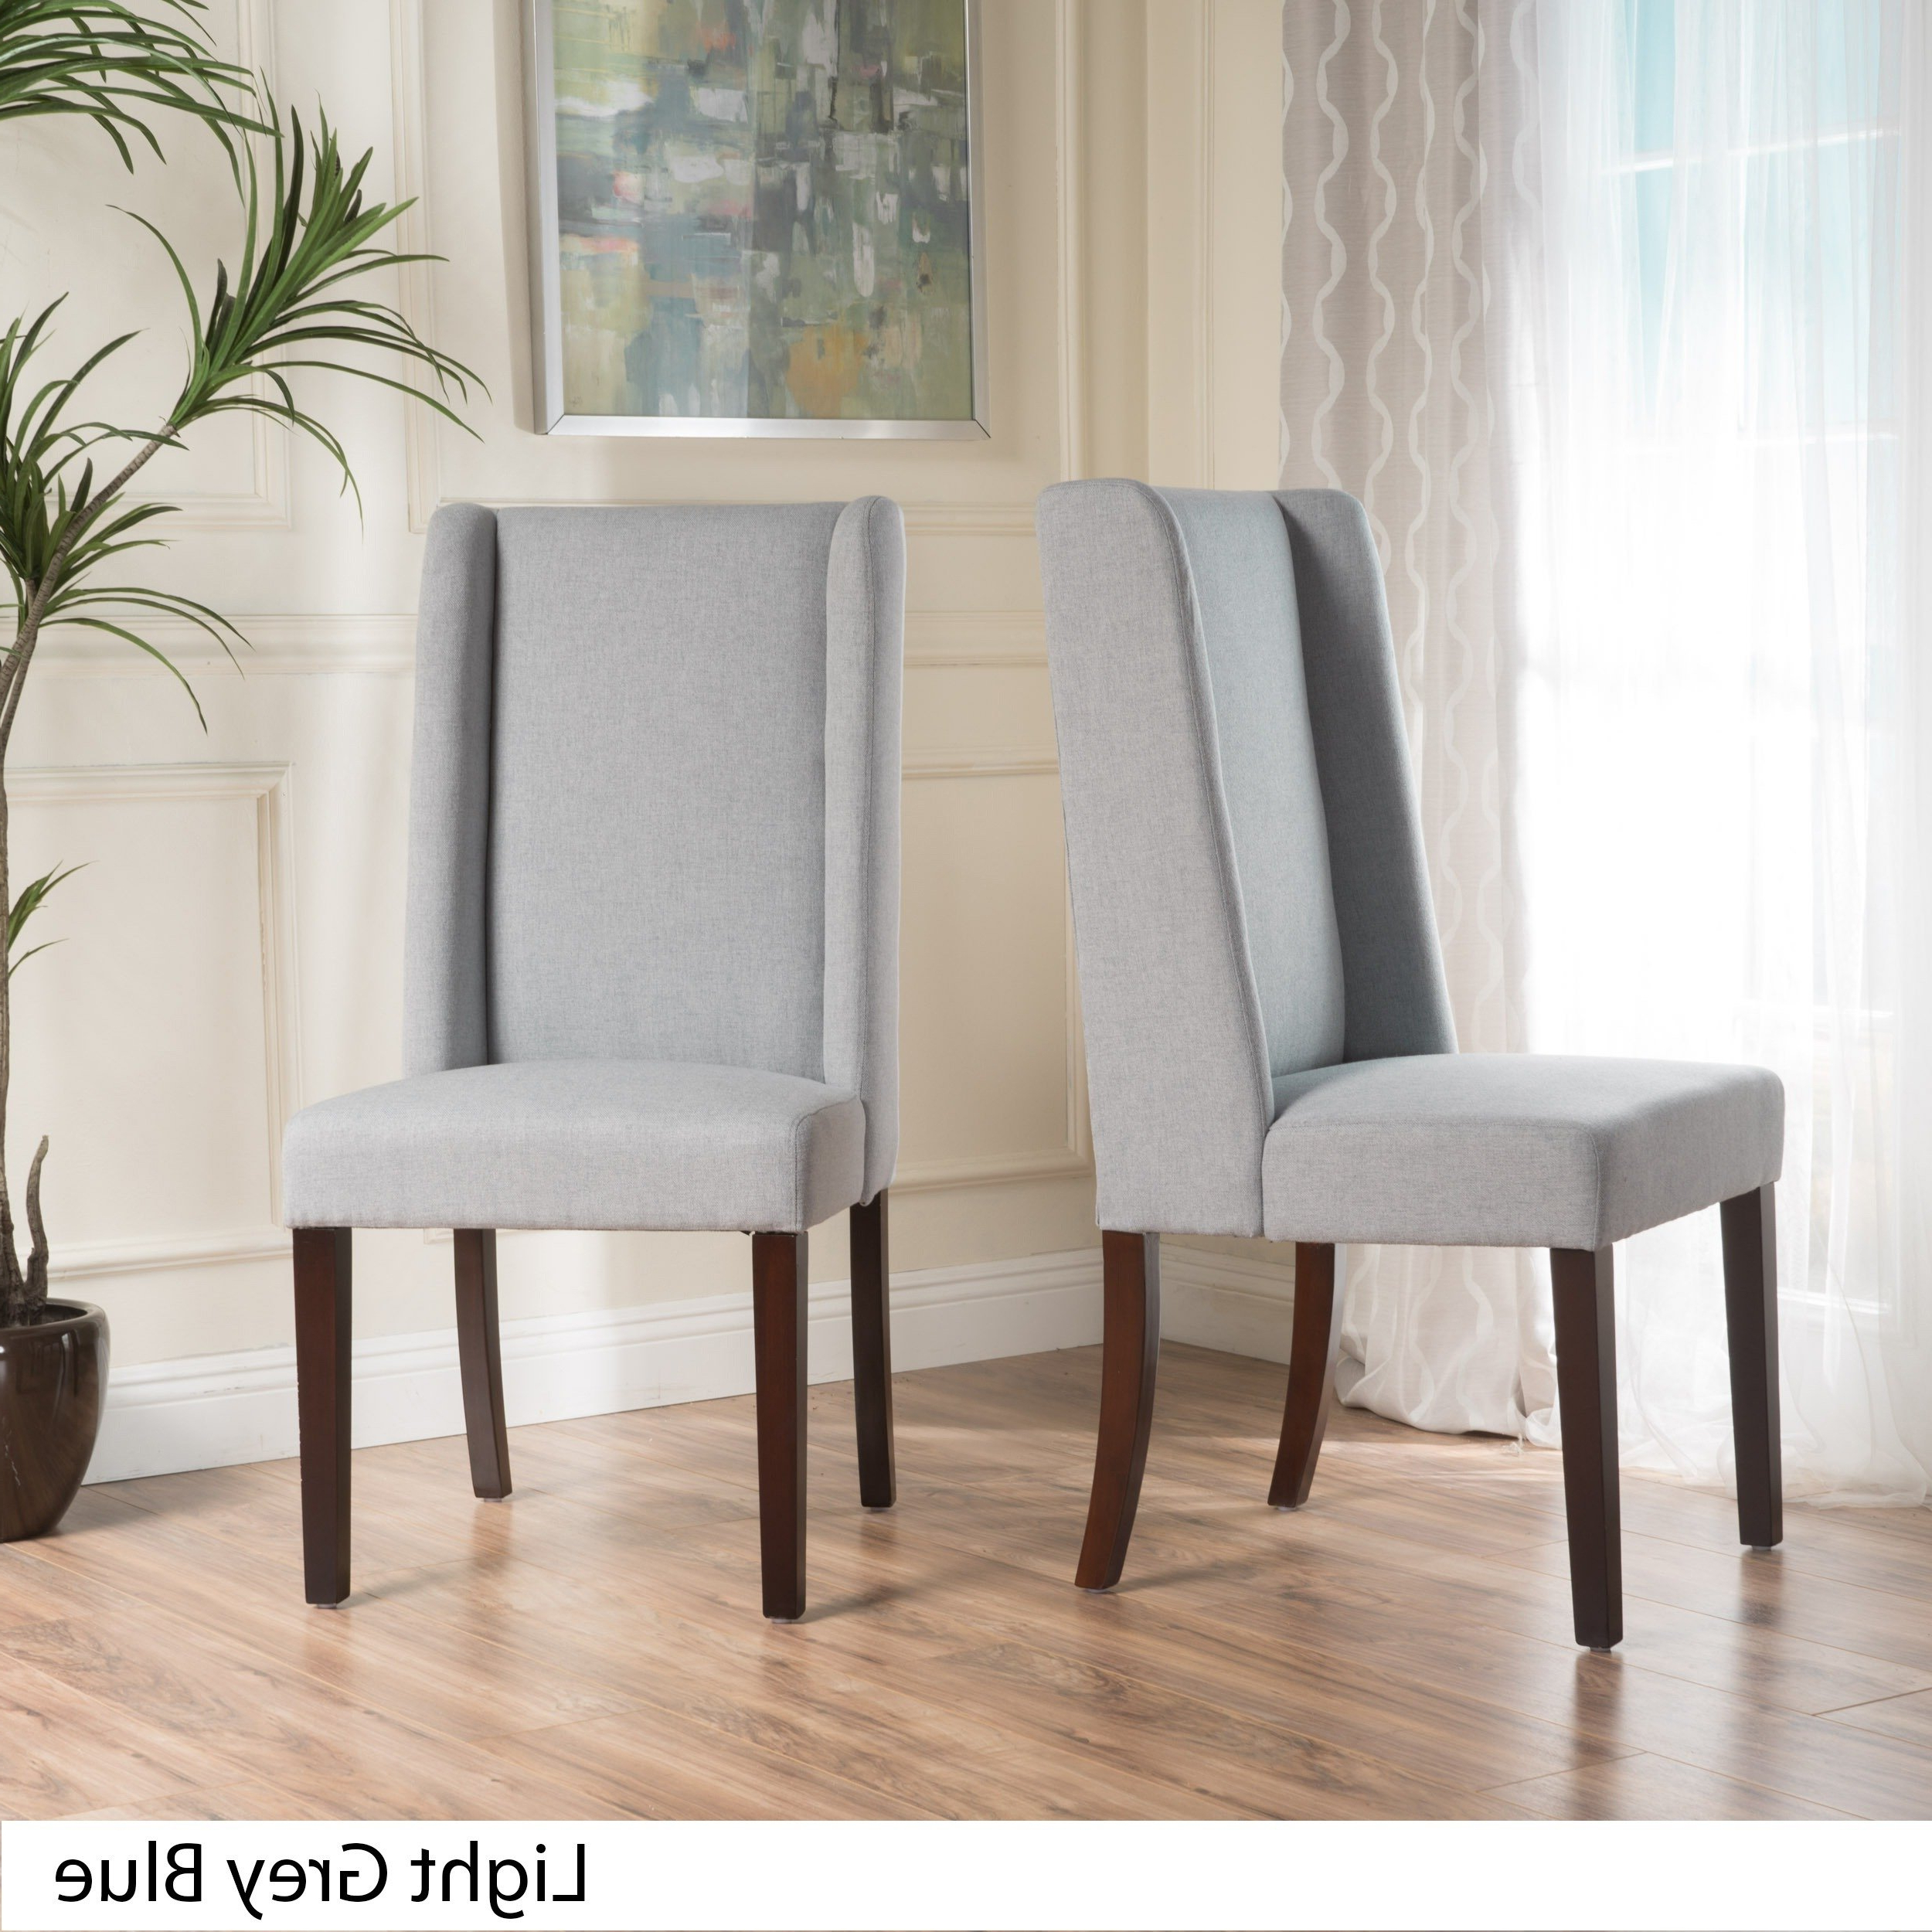 Most Recent Shop Rory Wing Back Fabric Dining Chair (set Of 2)christopher Throughout Rory Sofa Chairs (View 14 of 20)